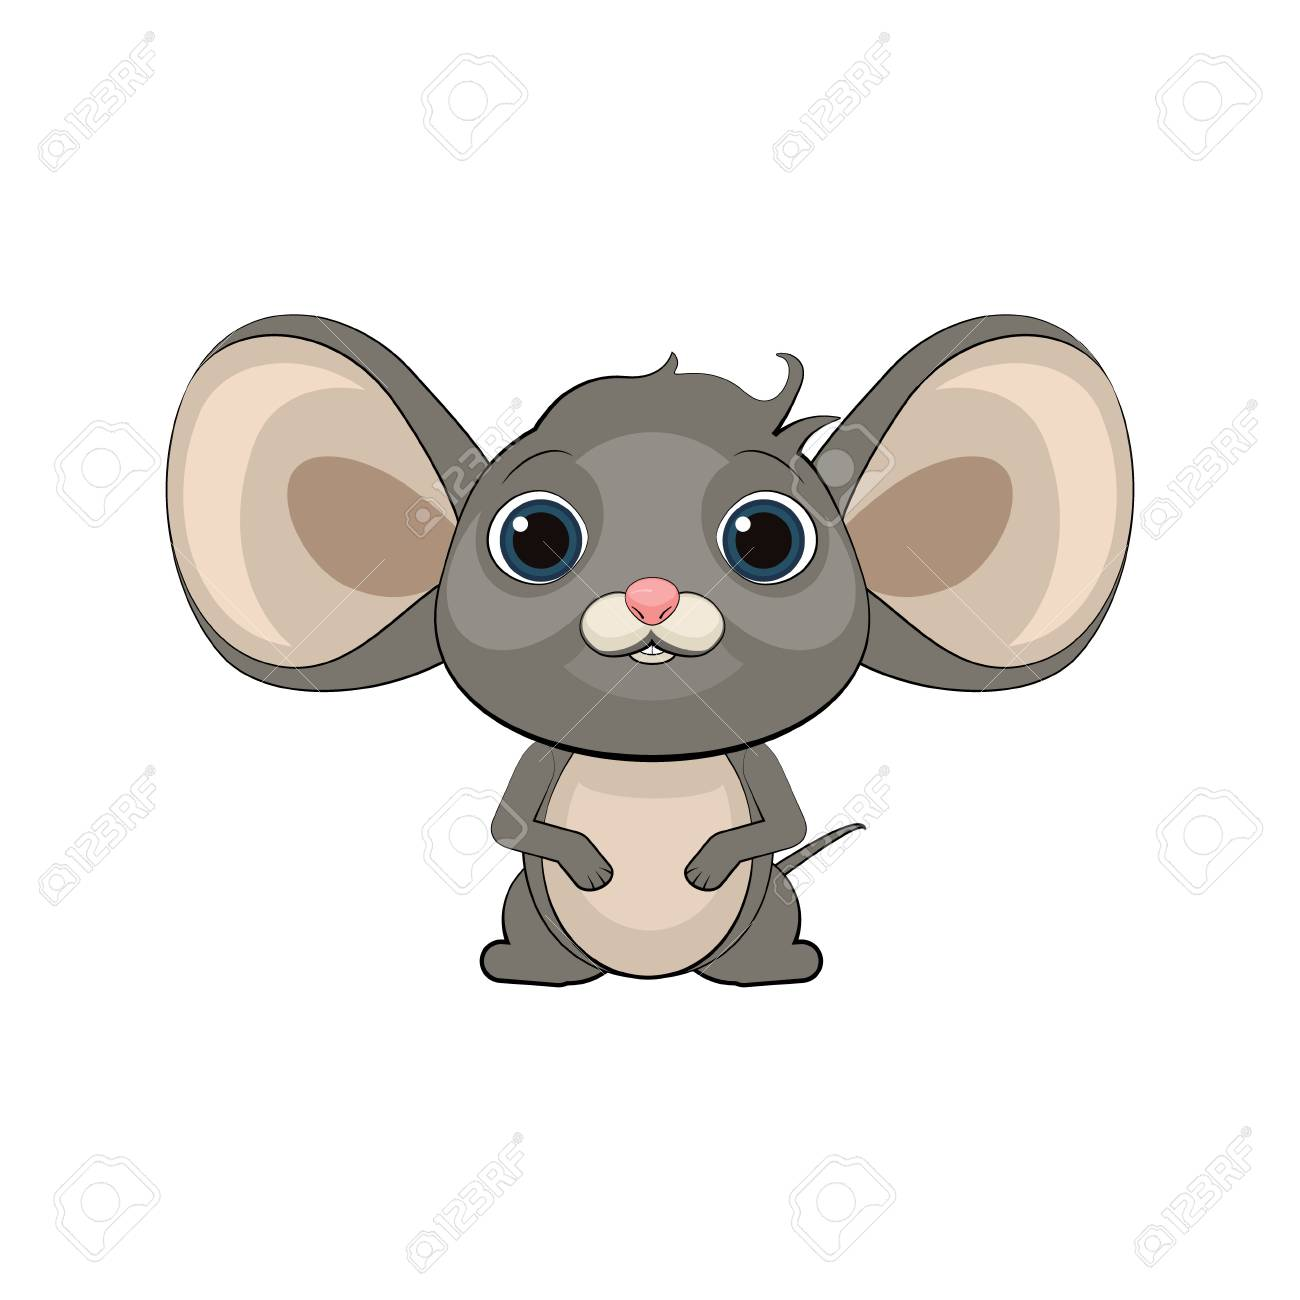 Cute Cartoon Mouse Vector Illustration Royalty Free Cliparts Vectors And Stock Illustration Image 84181044